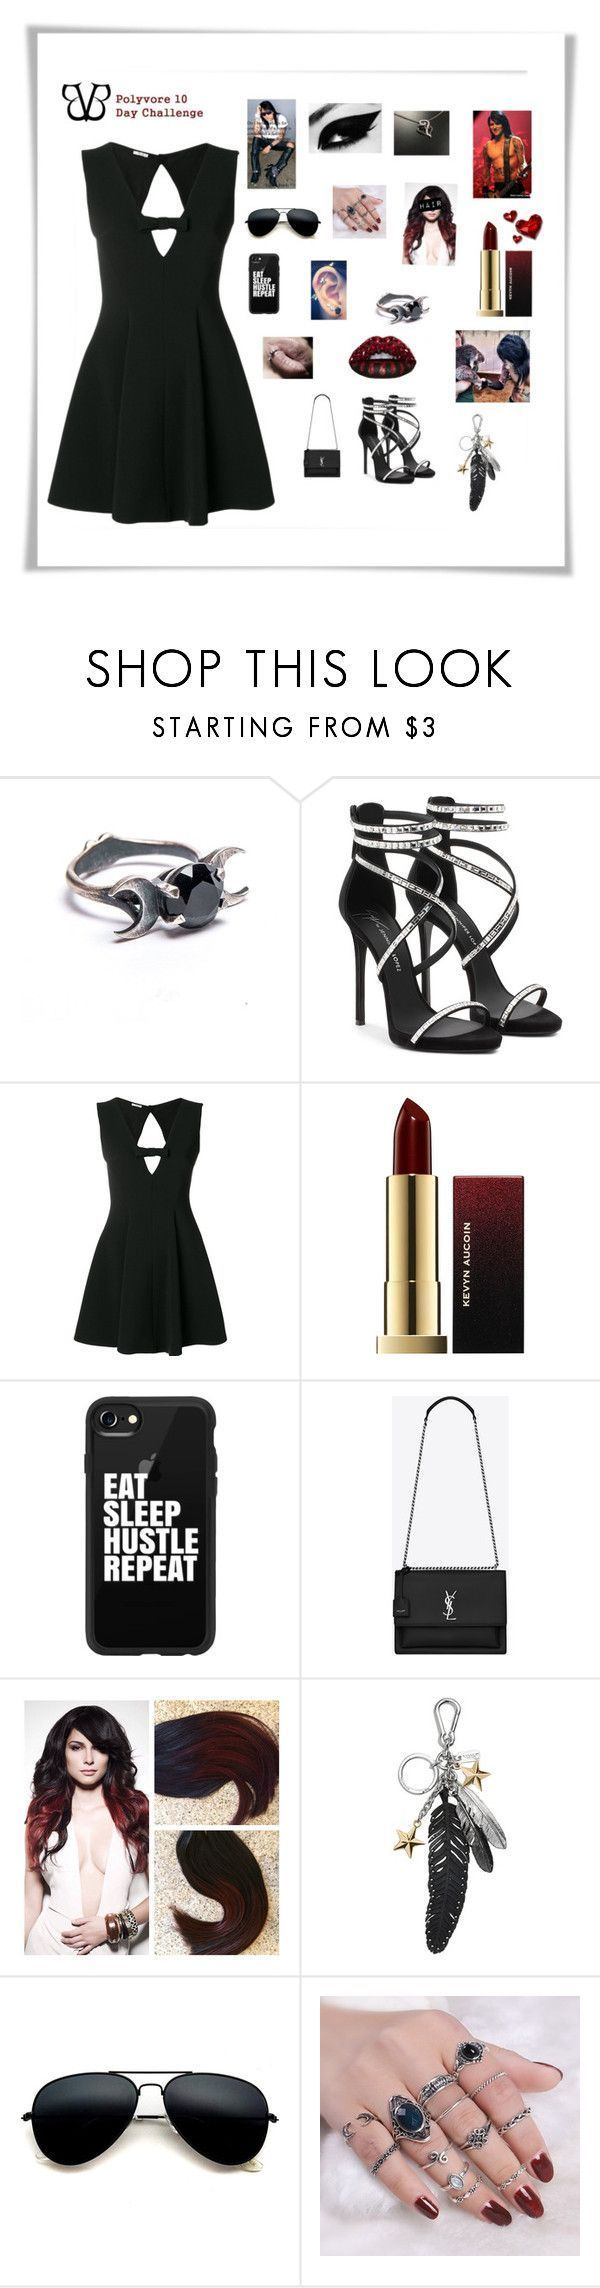 Day 5: Date W/ Fave #wfaves Day 5: Date W/ Fave by bluelight3371x ❤ liked on Polyvore featuring Miu Miu, Kevyn Aucoin, Casetify, Yves Saint Laurent and Coach #wfaves Day 5: Date W/ Fave #wfaves Day 5: Date W/ Fave by bluelight3371x ❤ liked on Polyvore featuring Miu Miu, Kevyn Aucoin, Casetify, Yves Saint Laurent and Coach #wfaves